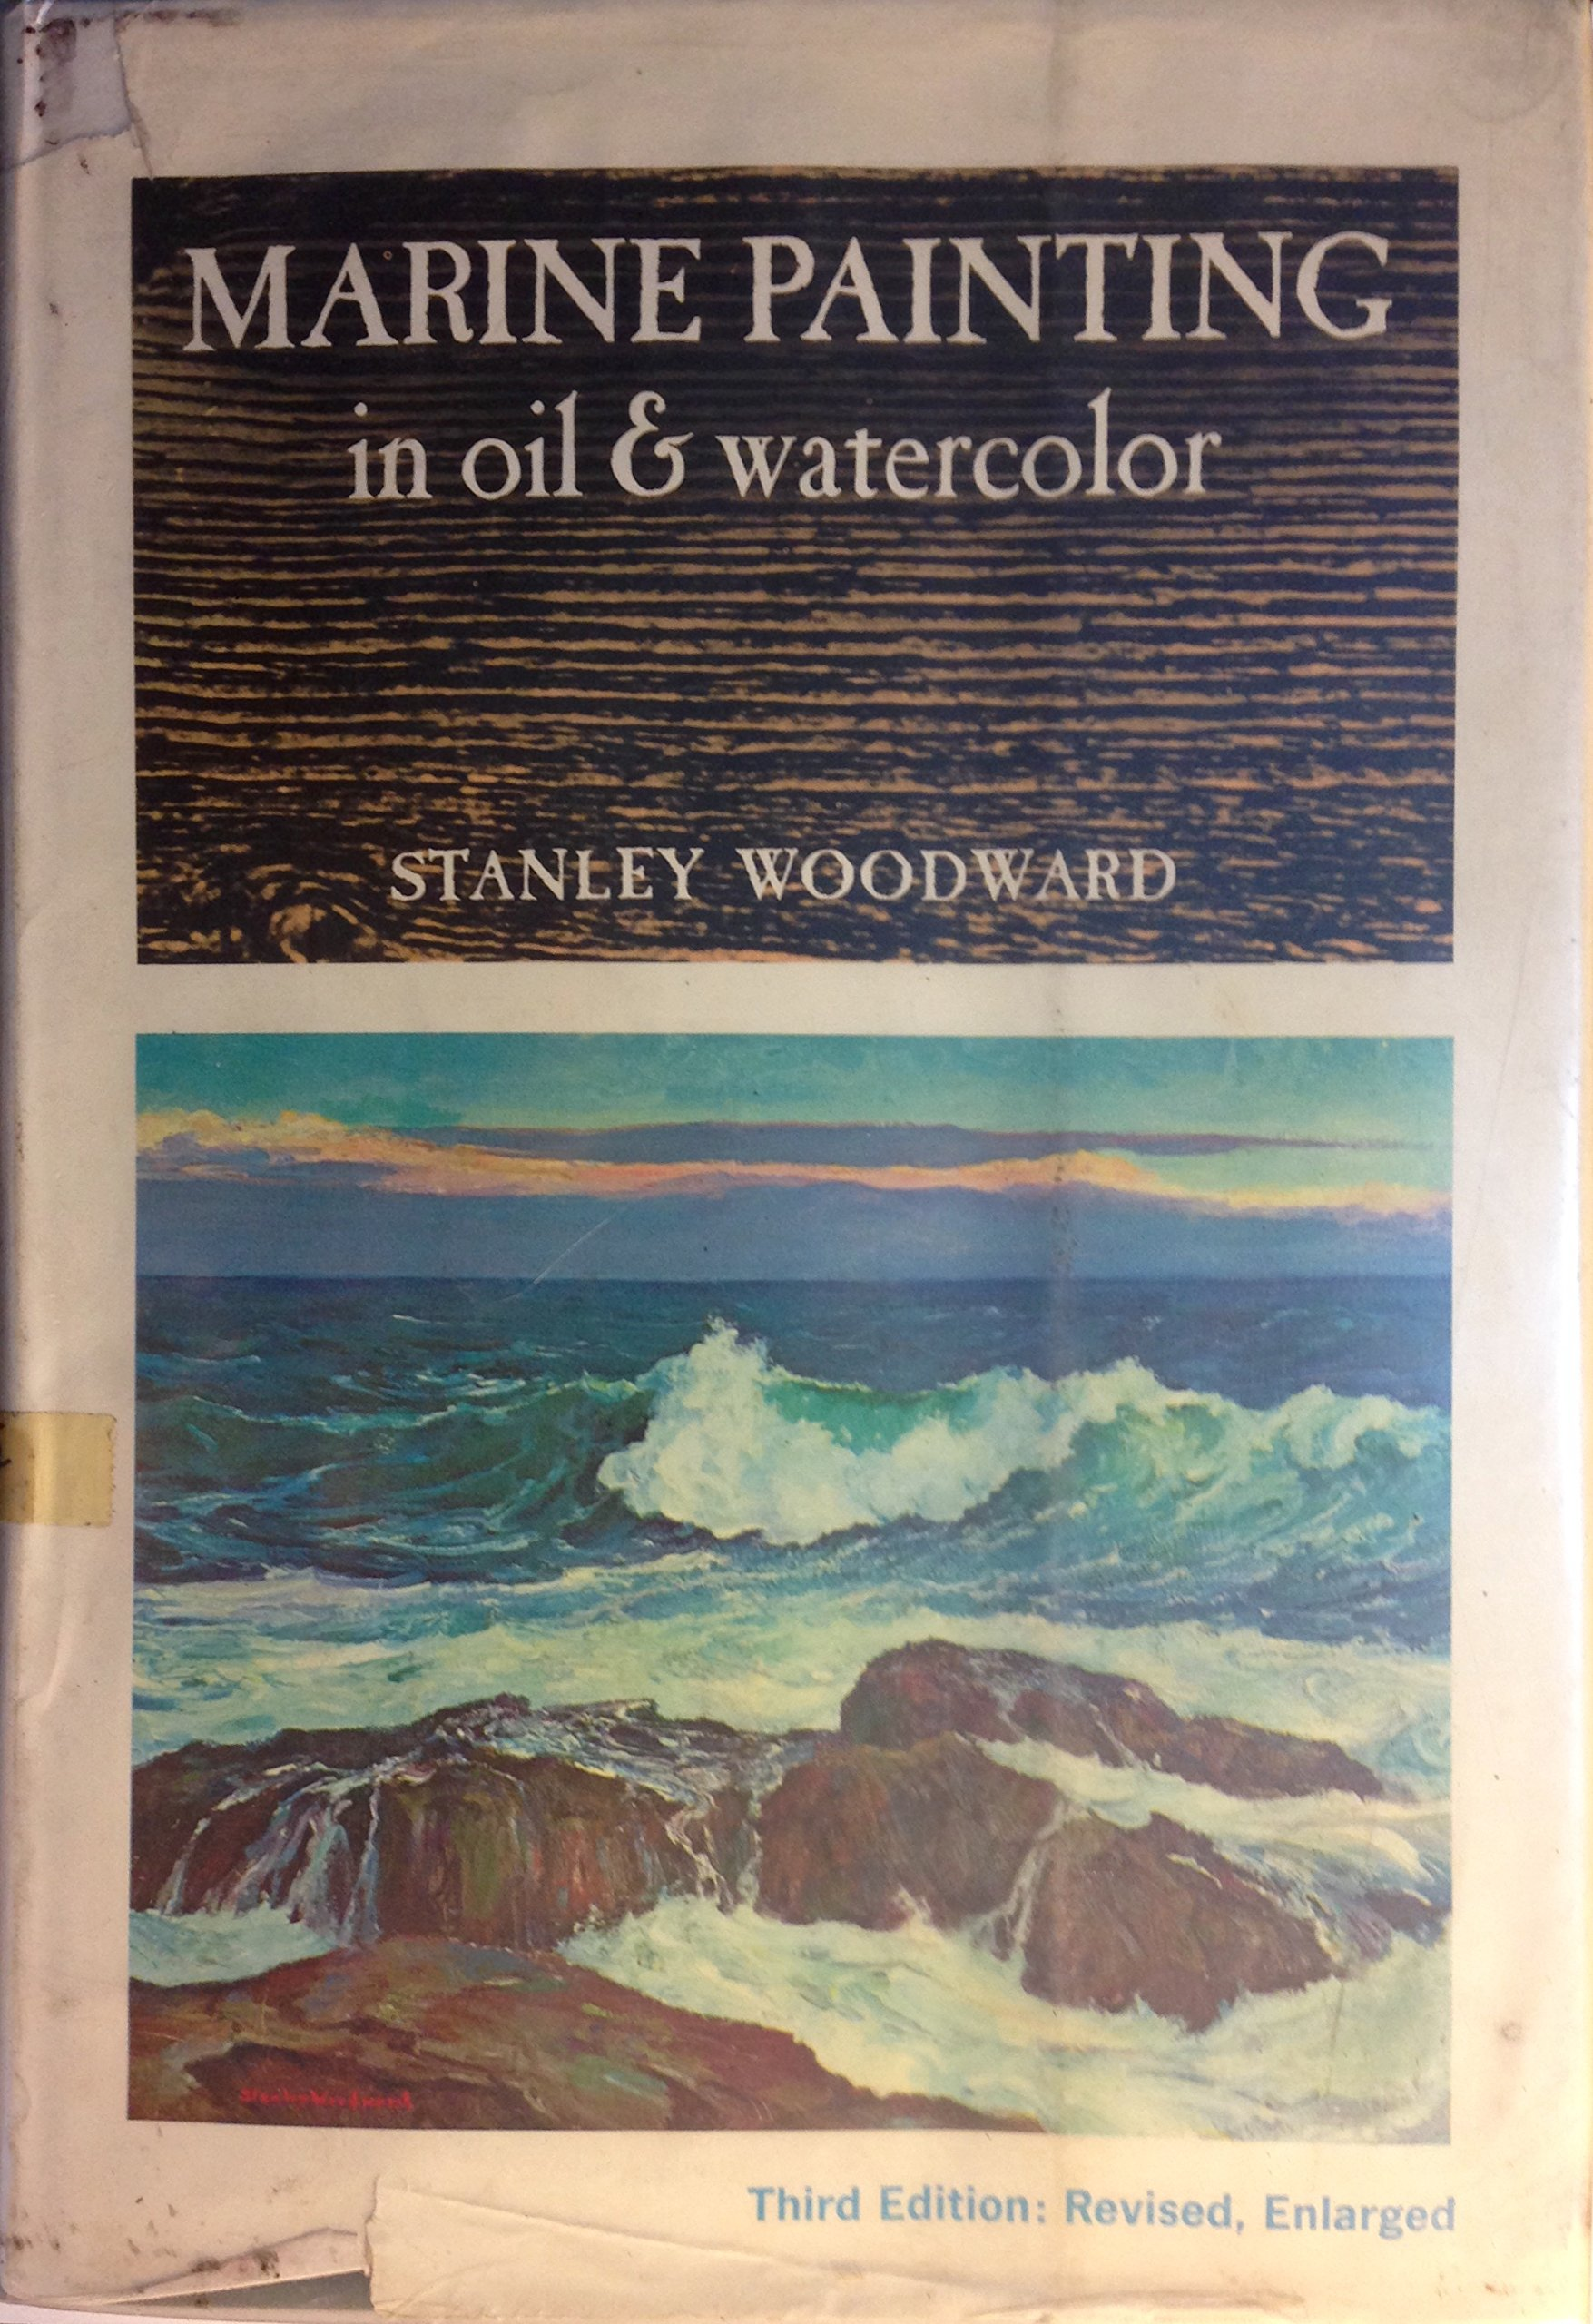 Marine Painting in Oil & Watercolor, Third Edition, Revised, Enlarged